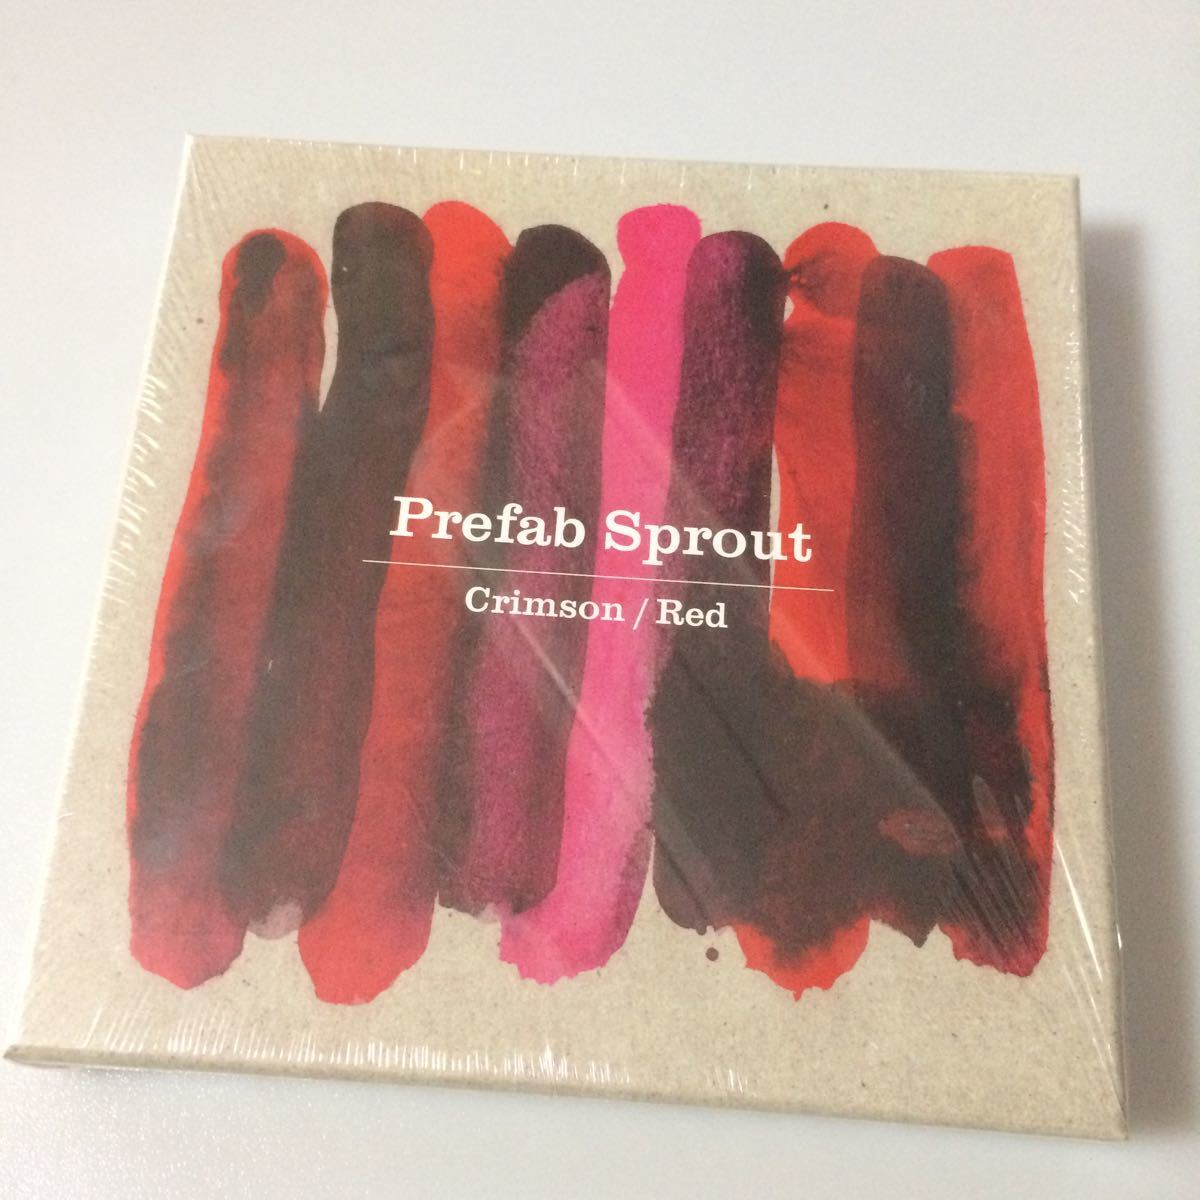 plifab* sprouts *[ Crimson | red ] PREFAB SPROUT [CRIMSON|RED]